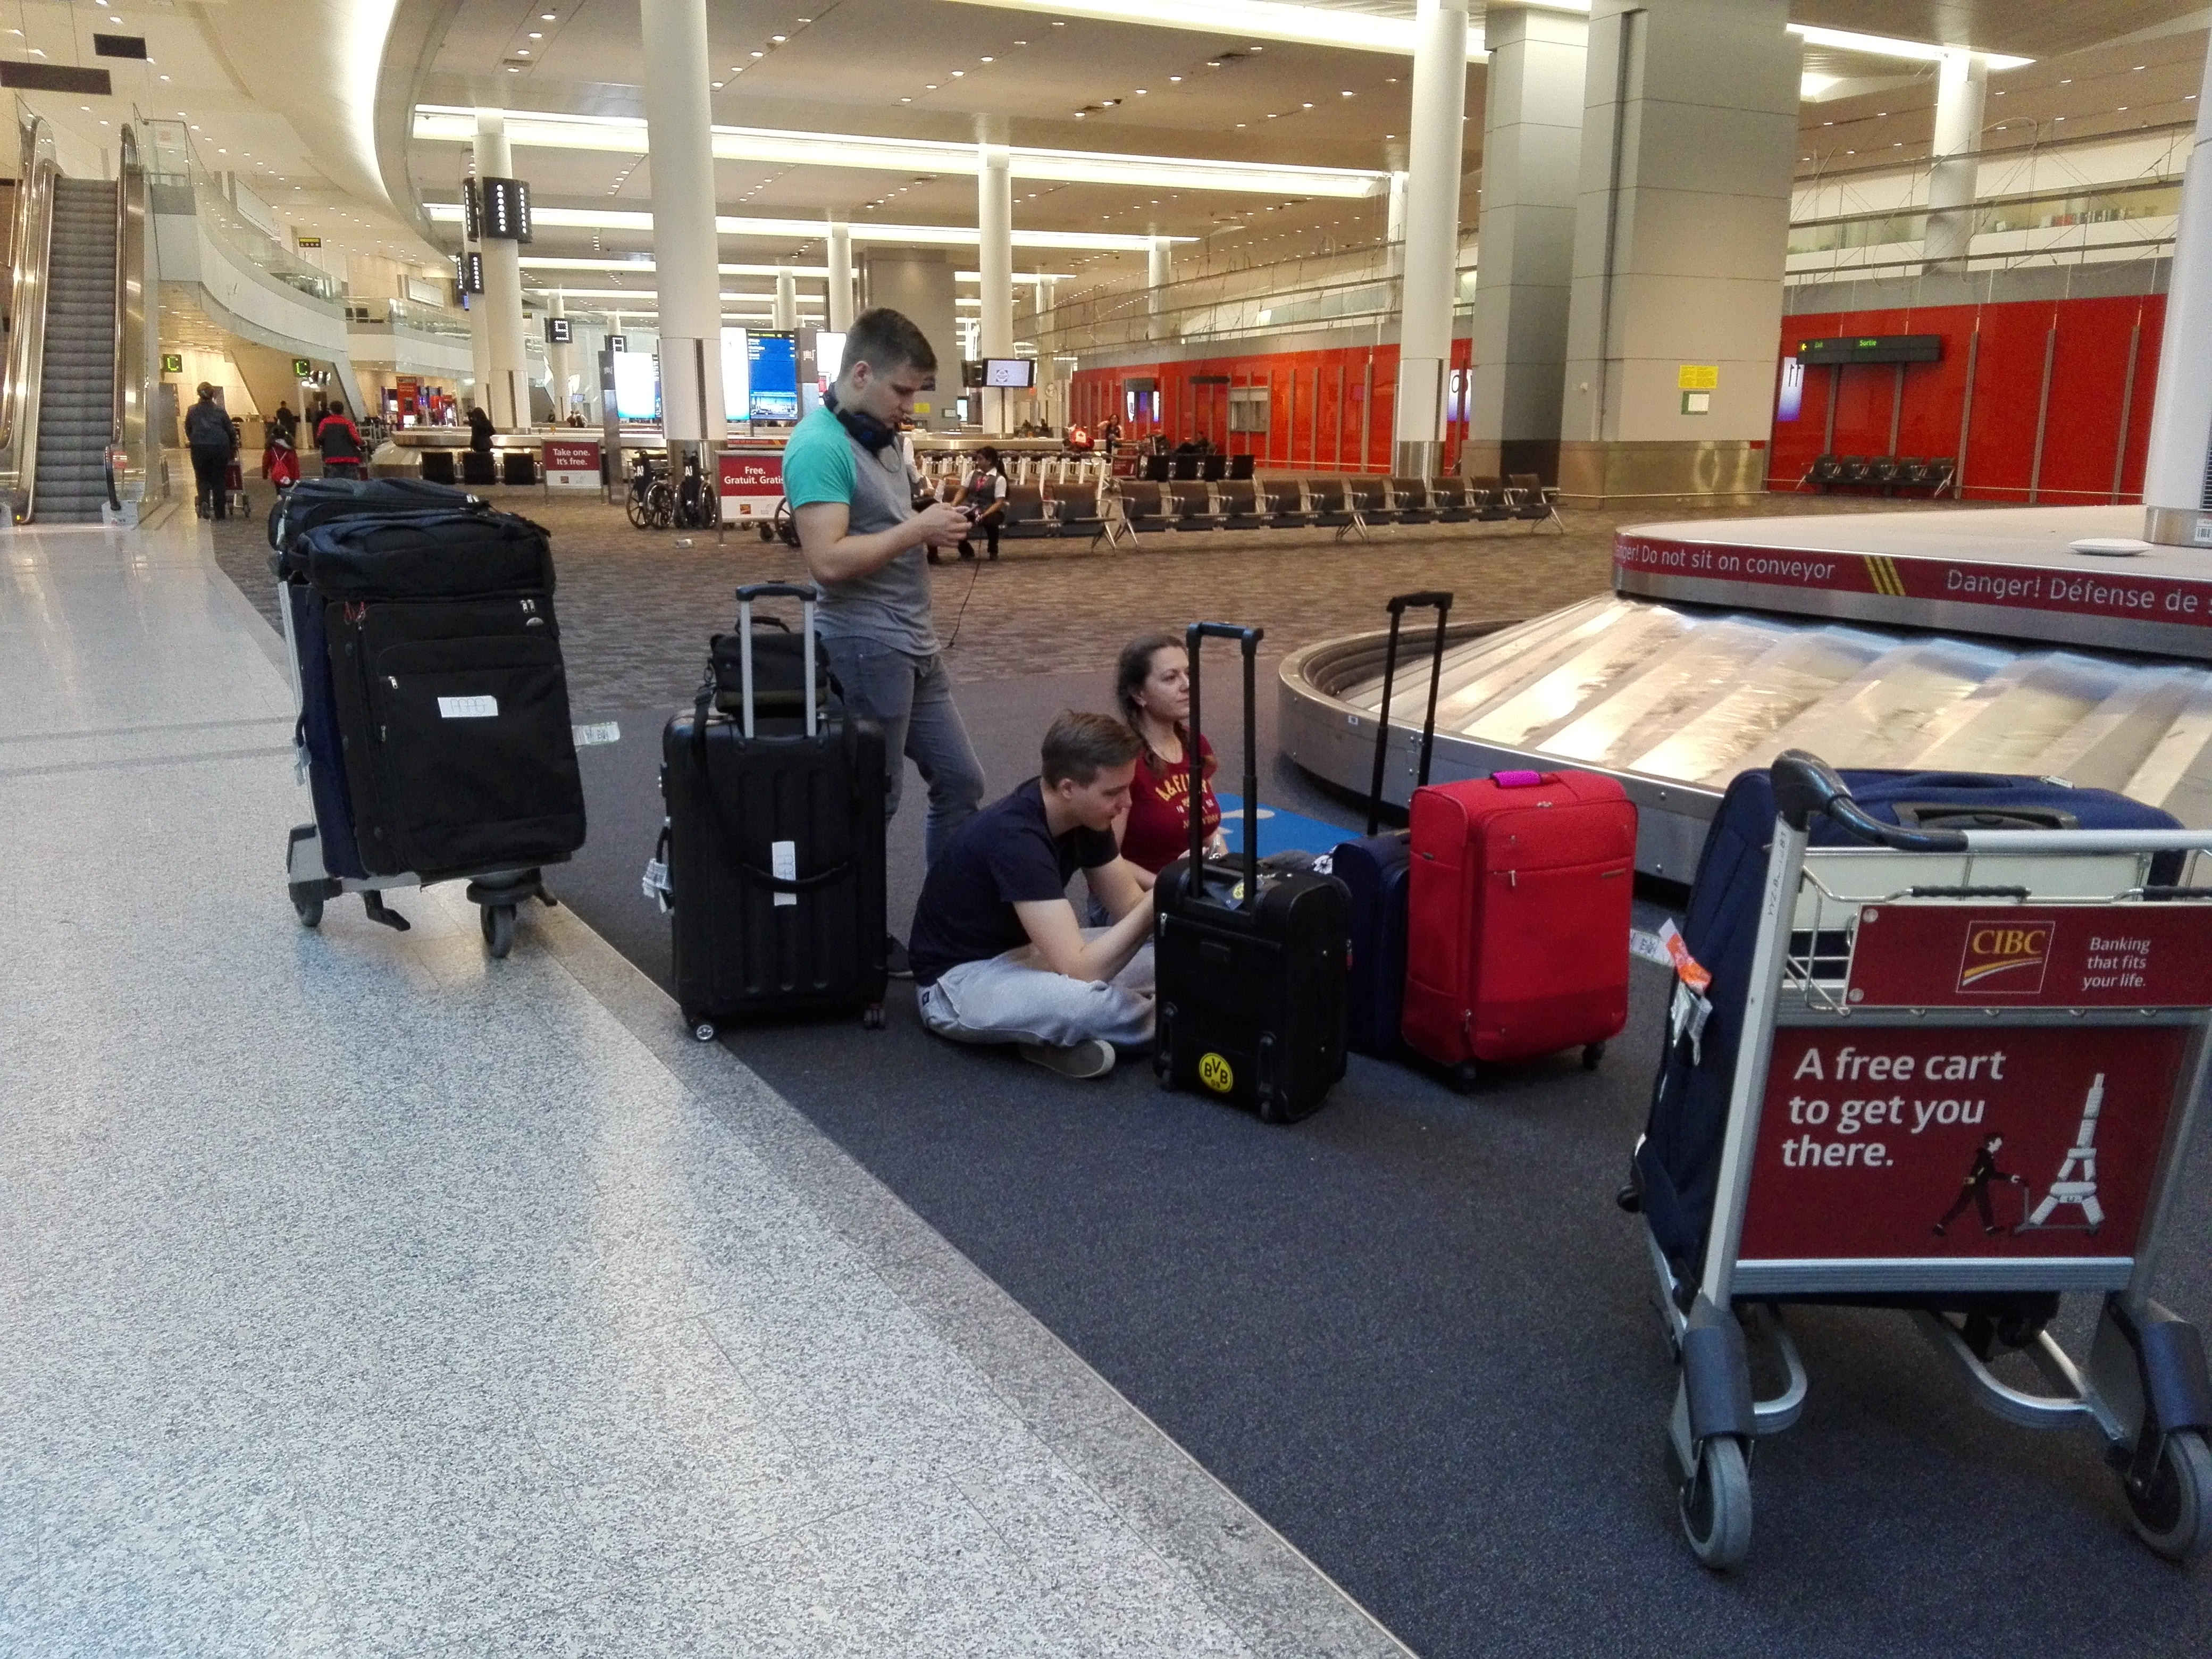 Yet the team is waiting for the last suitcase... but it will not arrive at the threadmill anymore